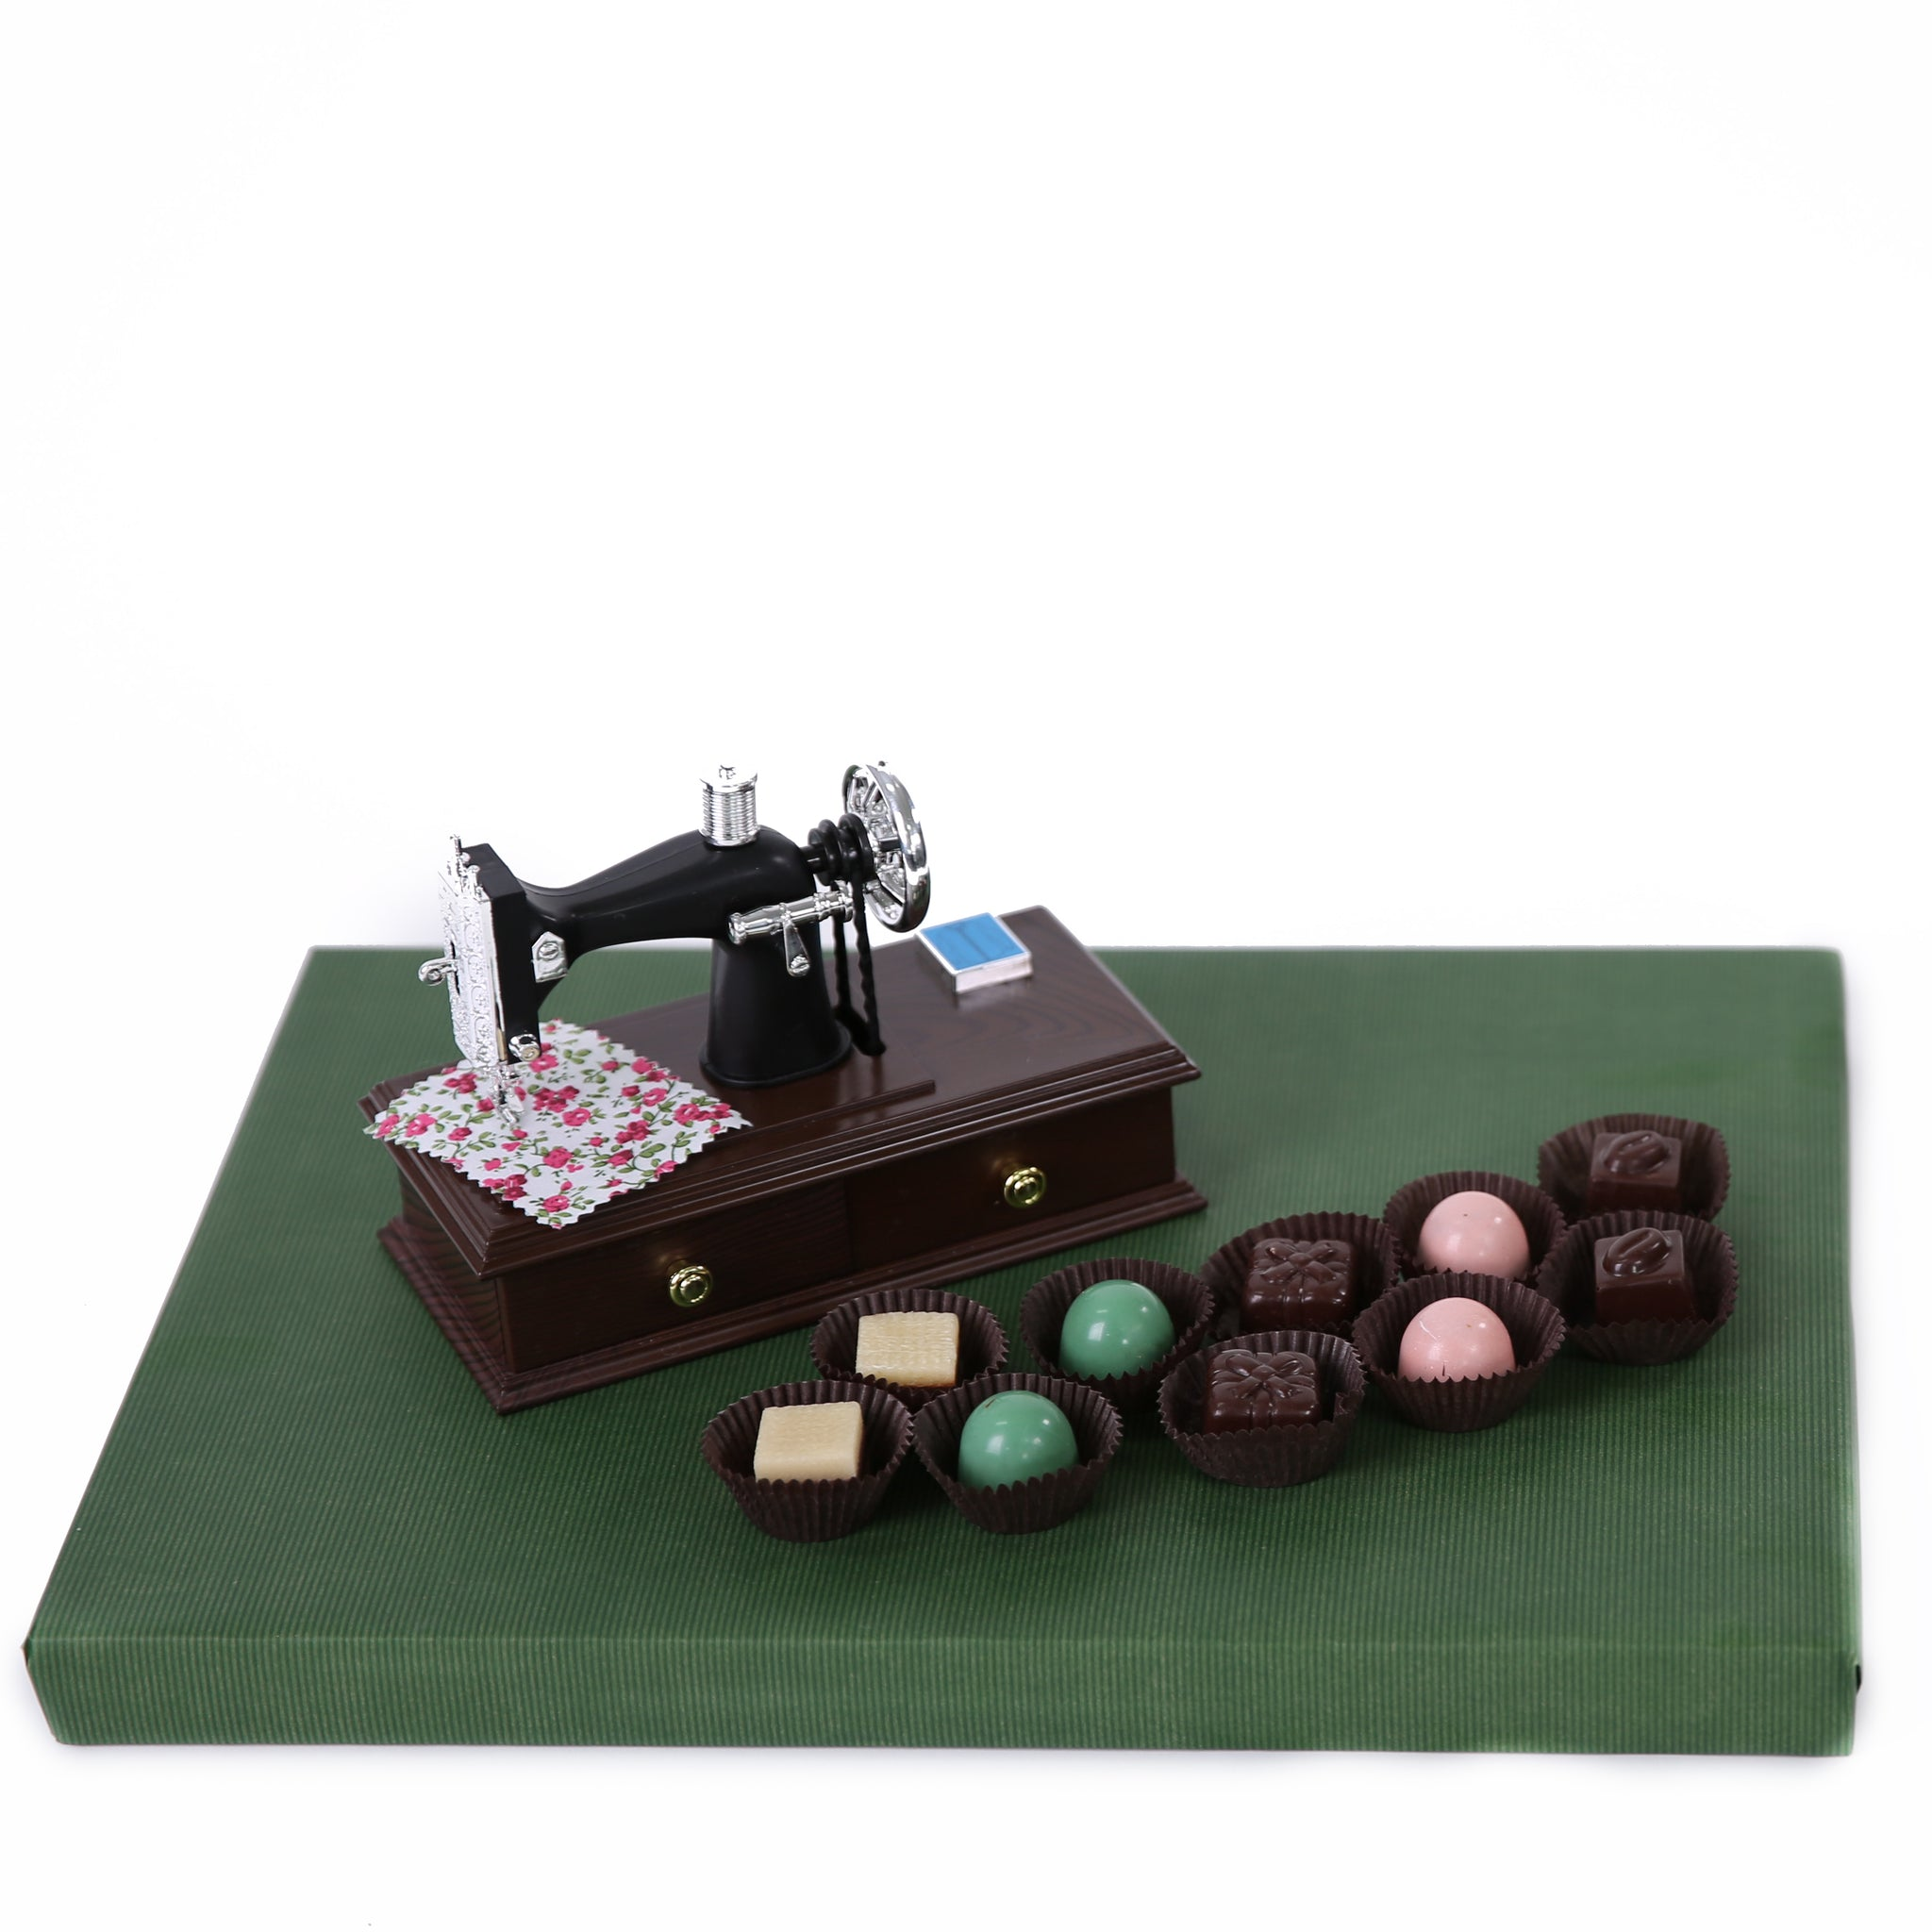 Sewing Machine Chocolate Arrangement